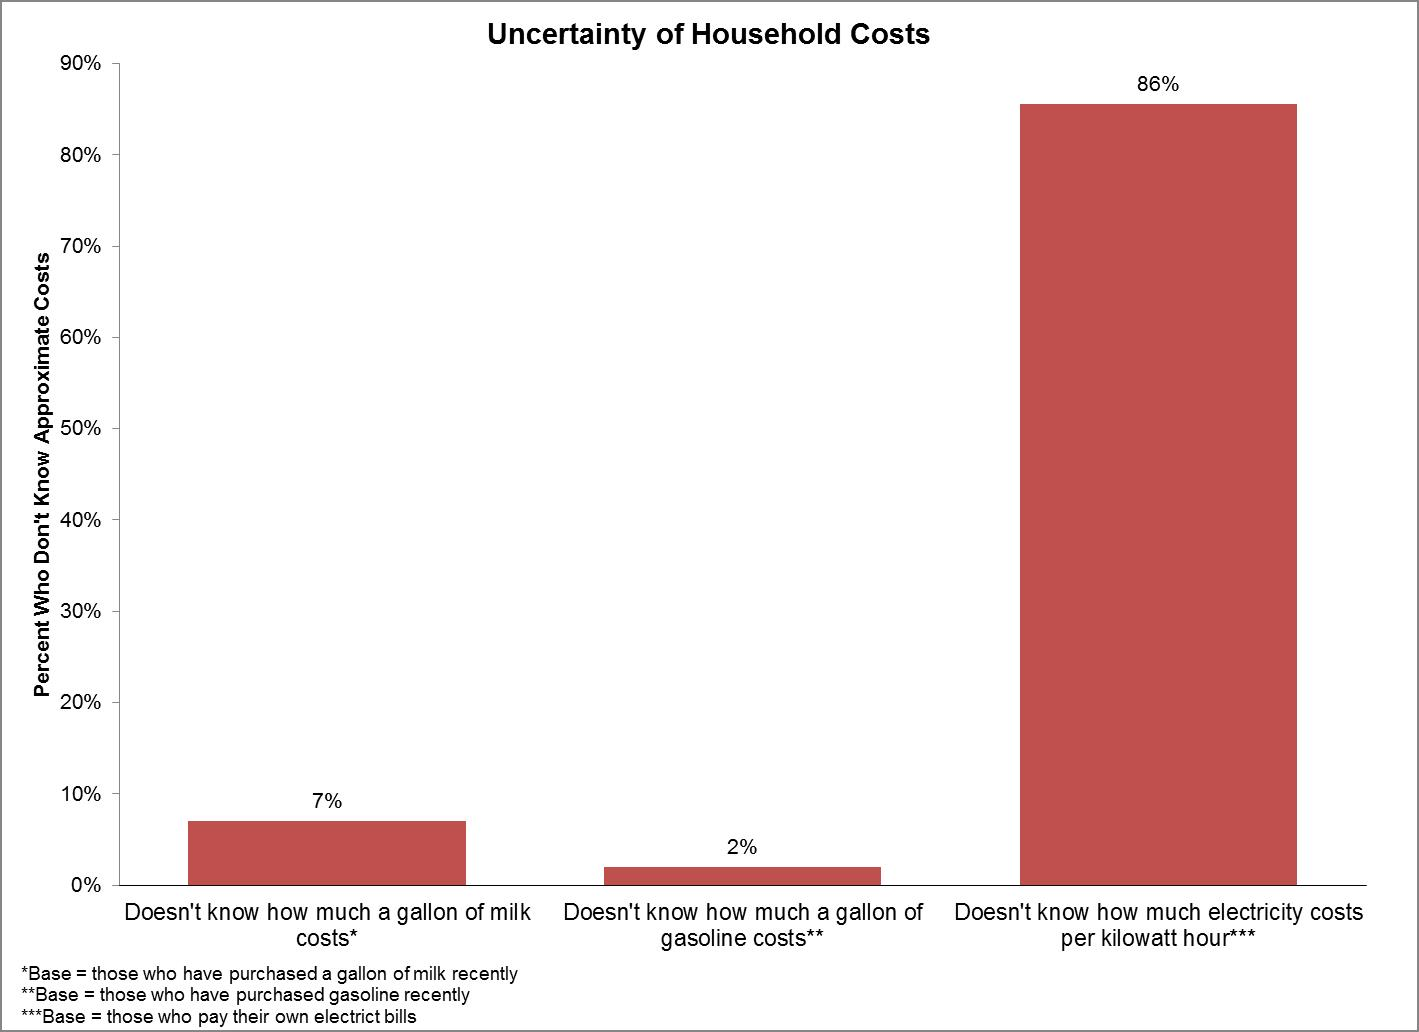 uncertainty-for-household-costs